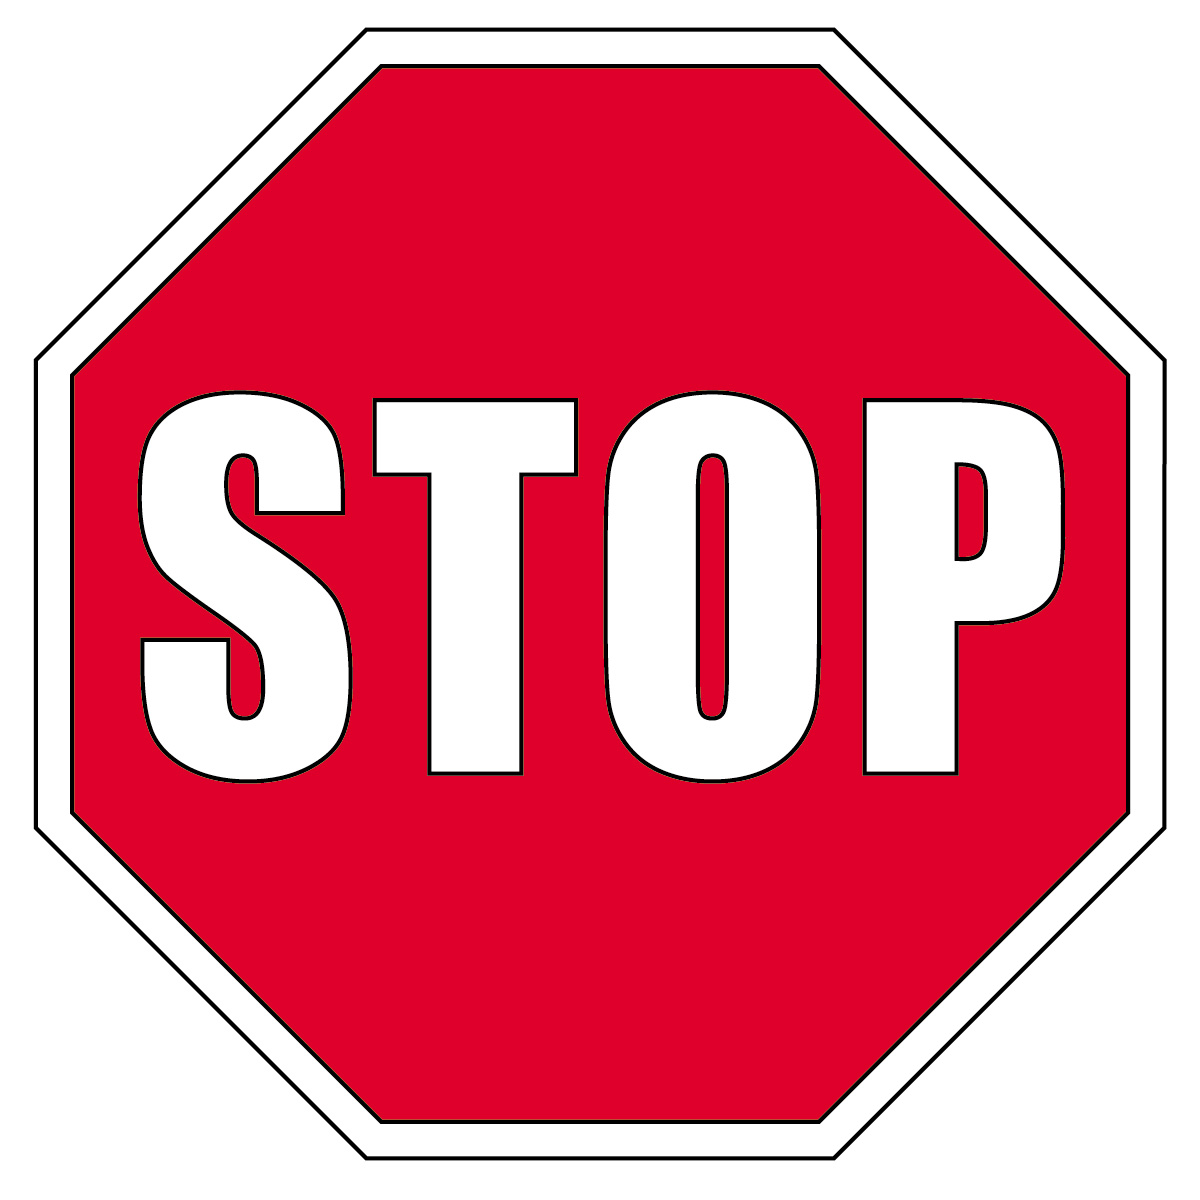 stop-sign-clipart-rcakp4pcl.jpeg